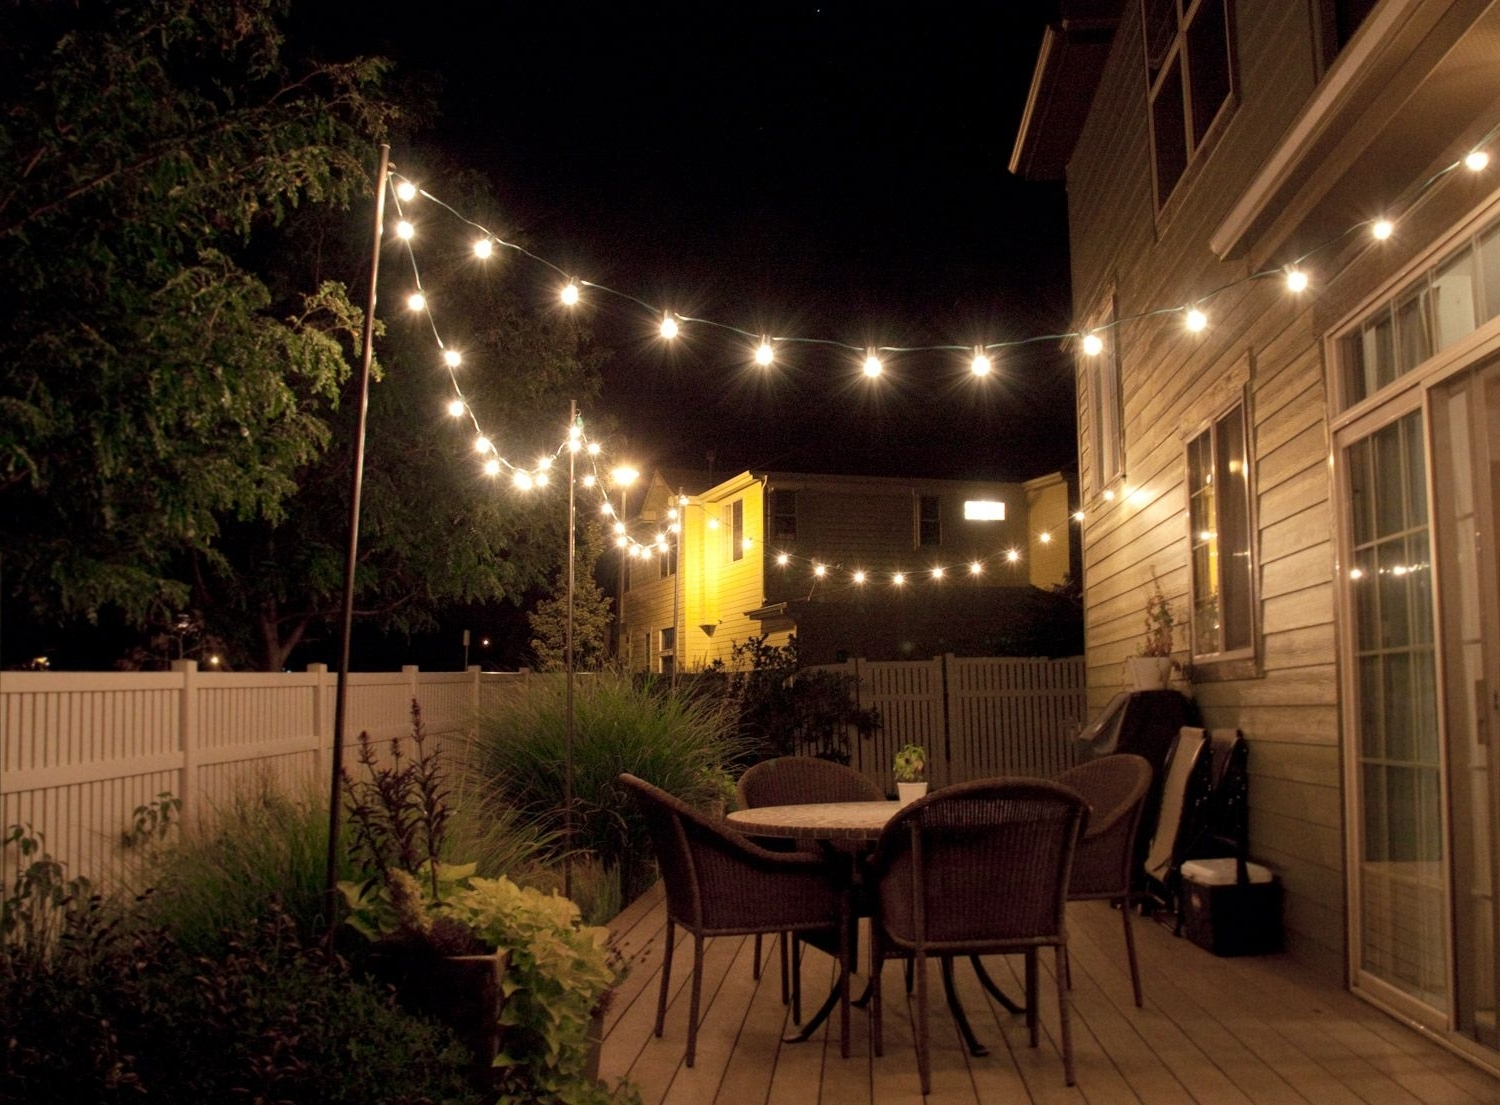 Outdoor Hanging String Lanterns Pertaining To Recent How To Make Inexpensive Poles To Hang String Lights On – Café Style (View 15 of 20)